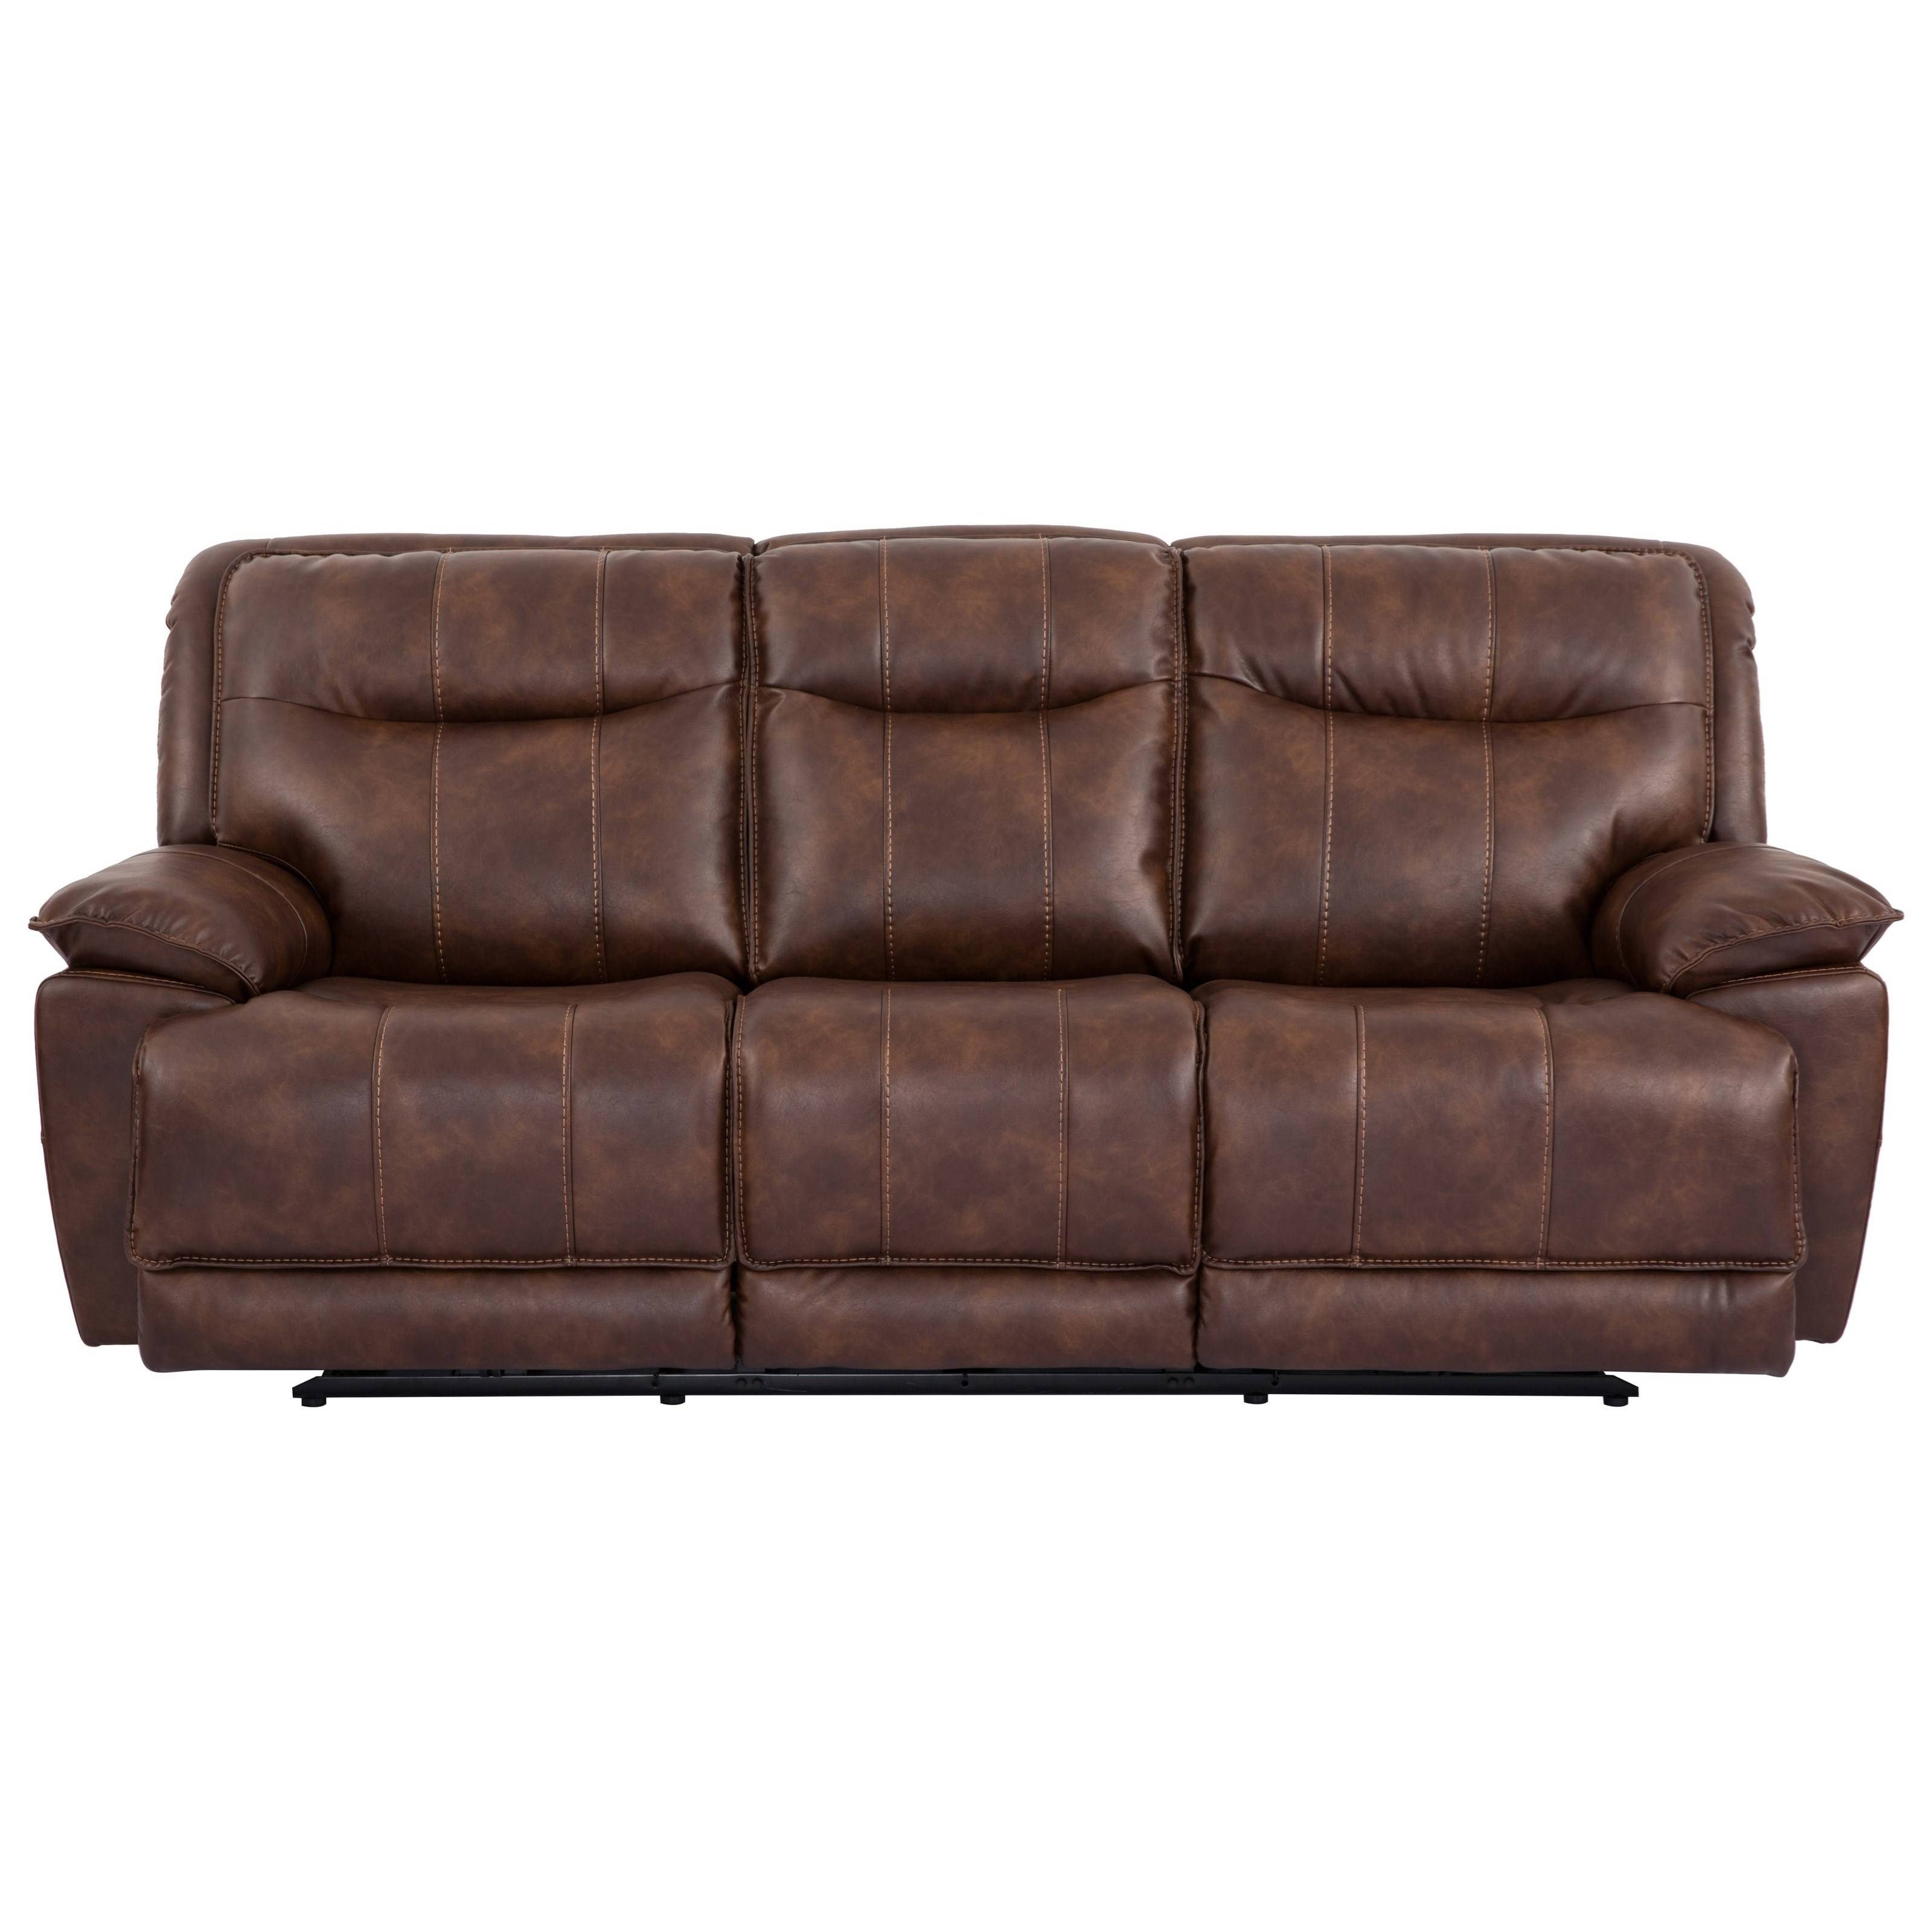 Cheers Sofa X9918M Reclining Sofa With Pillow Arms - Royal pertaining to Cheers Sofas (Image 7 of 15)